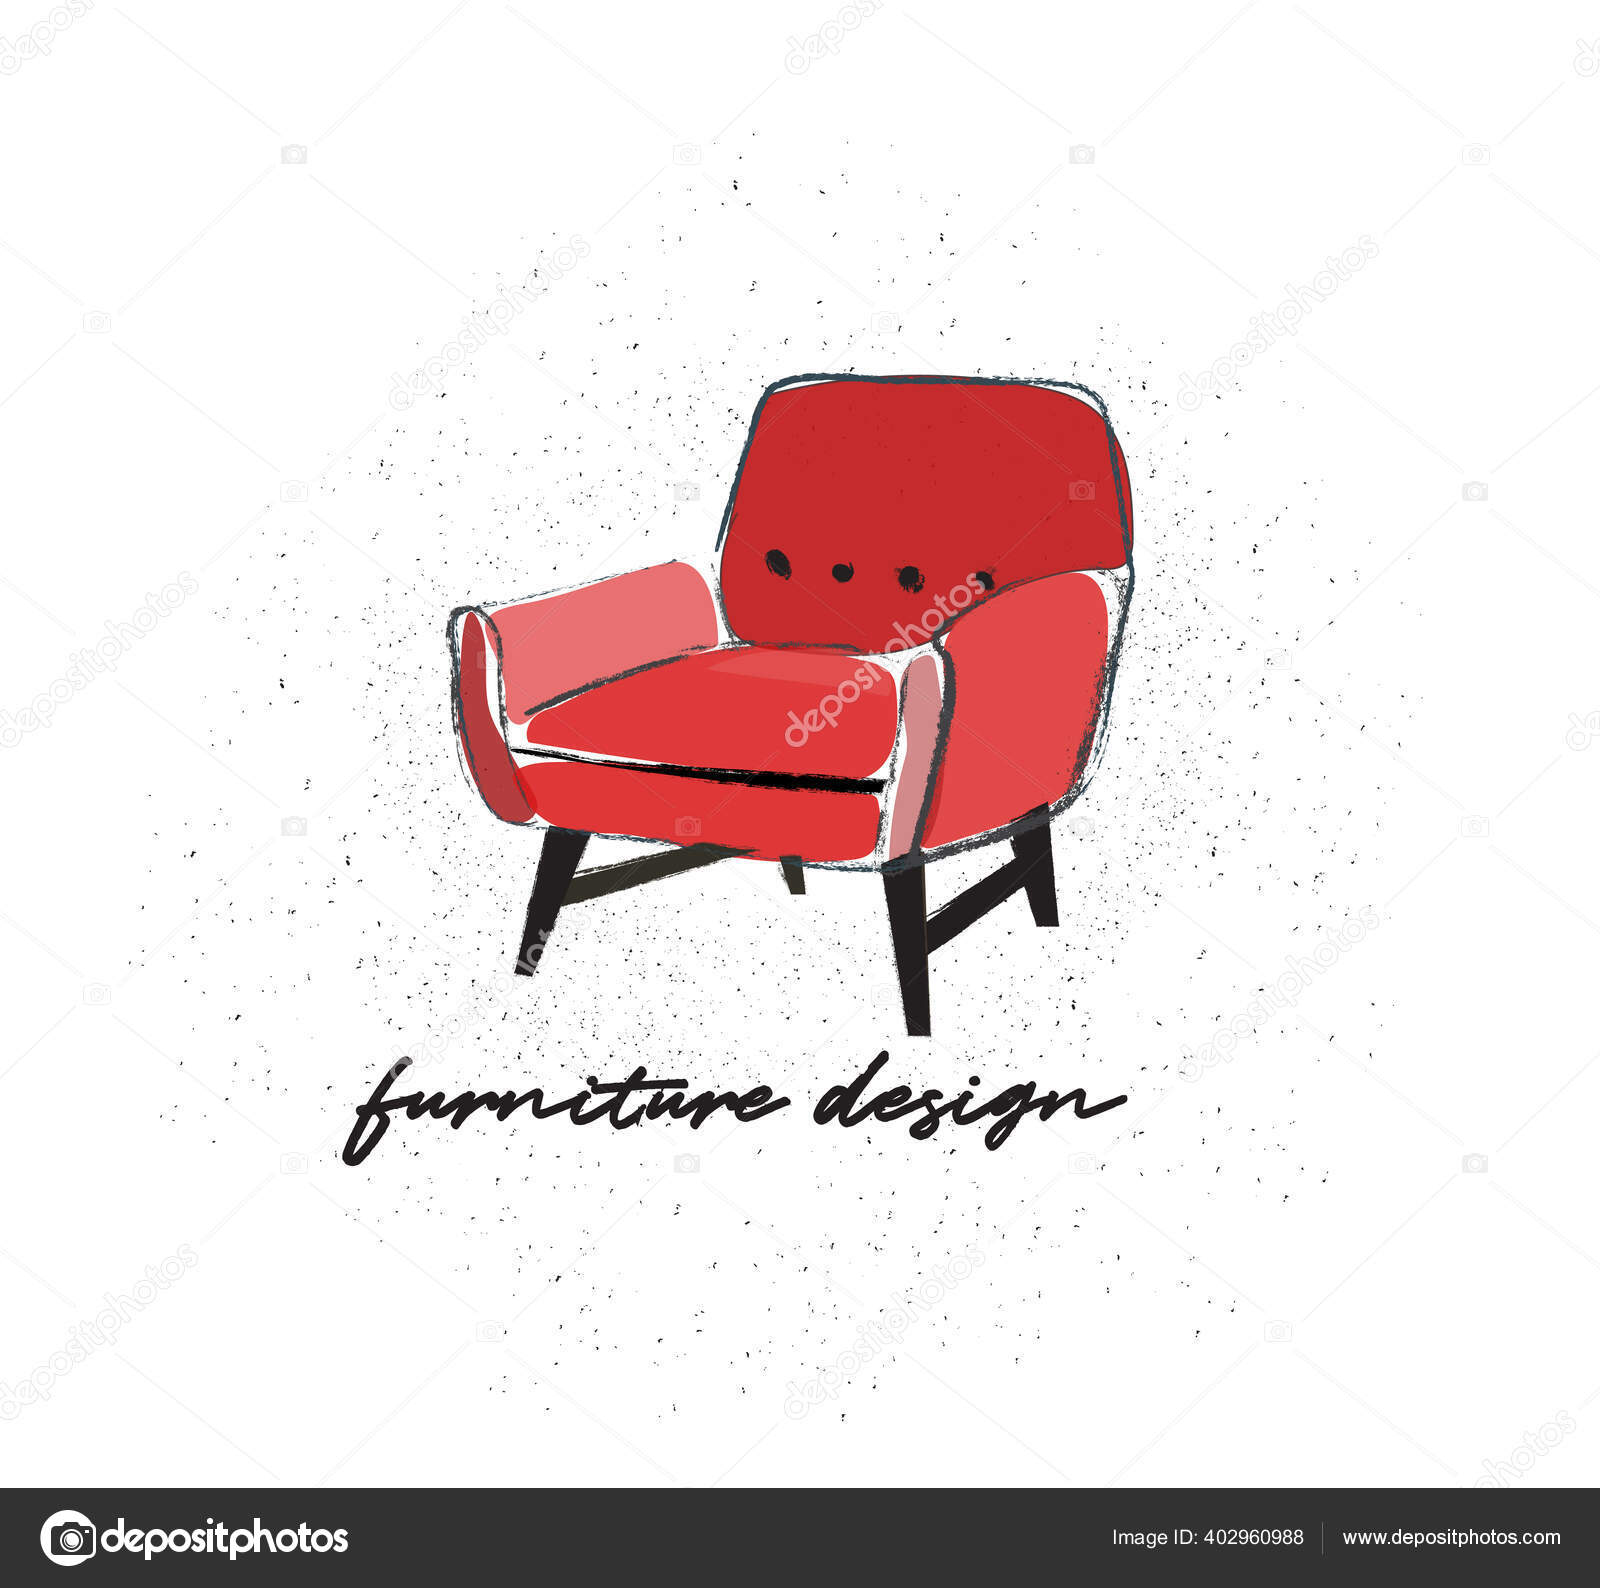 Watercolor Armchair Hand Drawn Chair Vector Furniture Illustration Mid Century Vector Image By Joanna Rosado Gmail Com Vector Stock 402960988